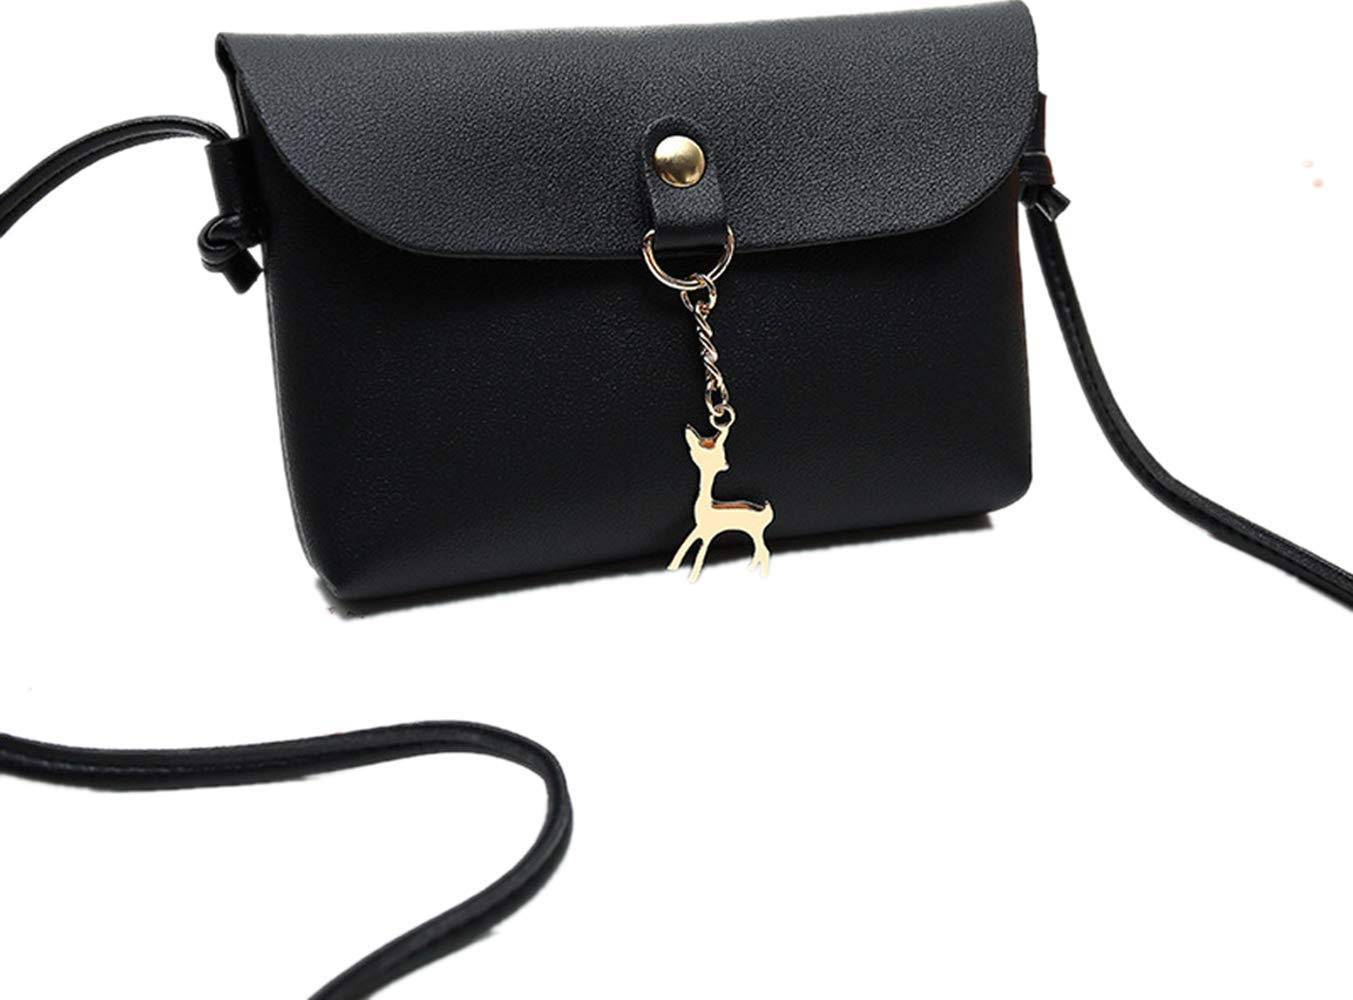 BCDshop Women Small Crossbody Shoulder Bag,GILR Deer Pendant Faux Leather Wallet Coin Purse (Black)